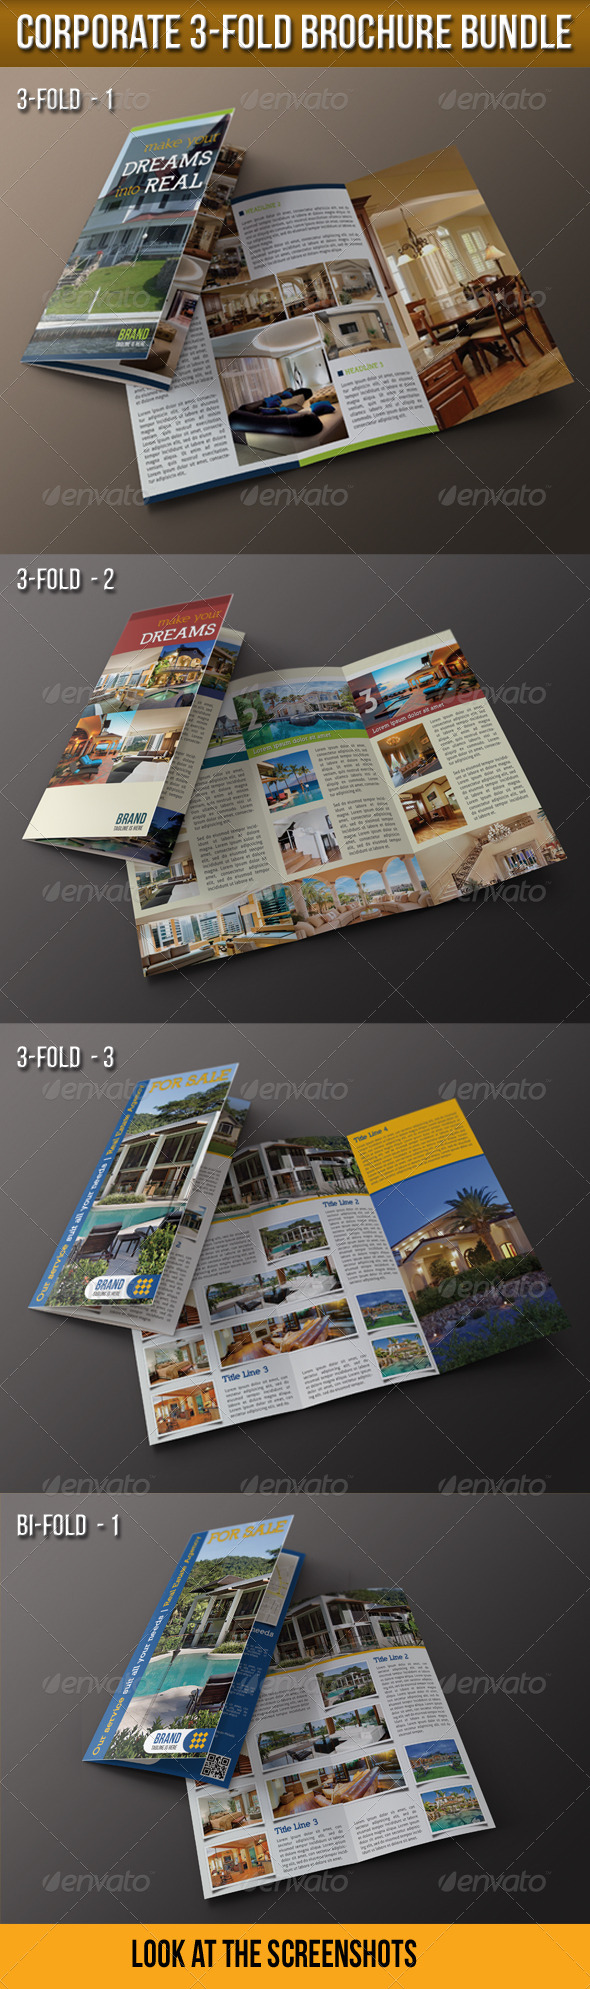 GraphicRiver Corporate 3-Fold Brochure Bundle 4937216